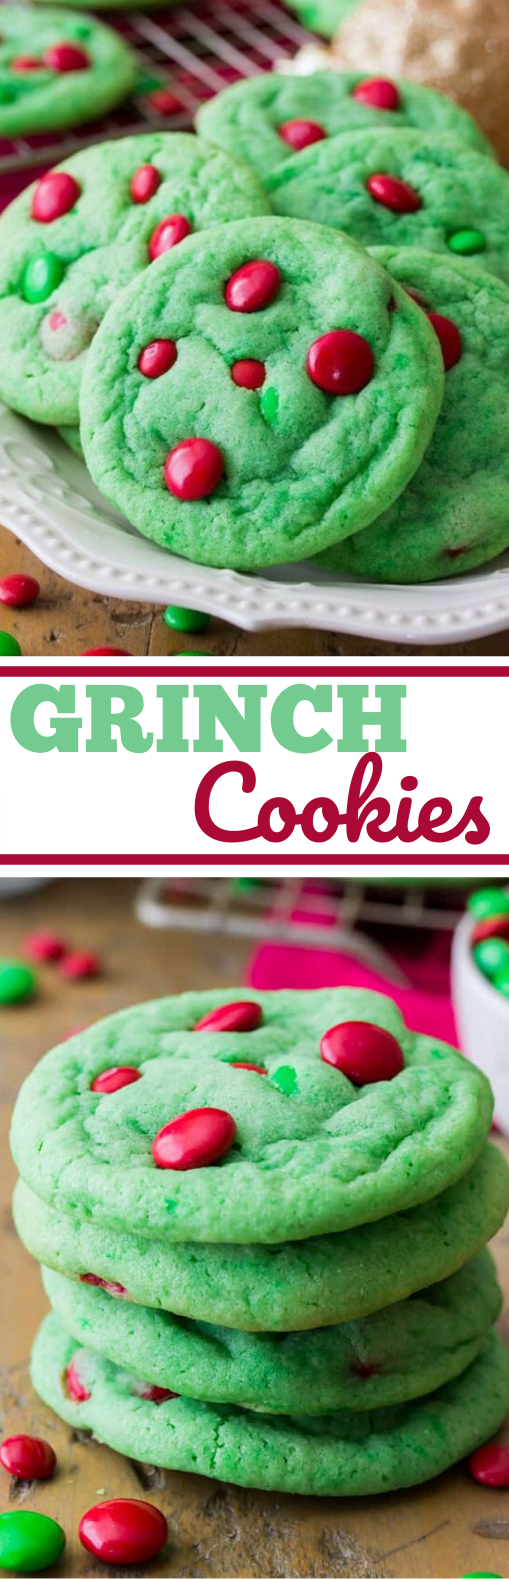 Grinch Cookies #cookies #desserts #recipes #christmas #baking